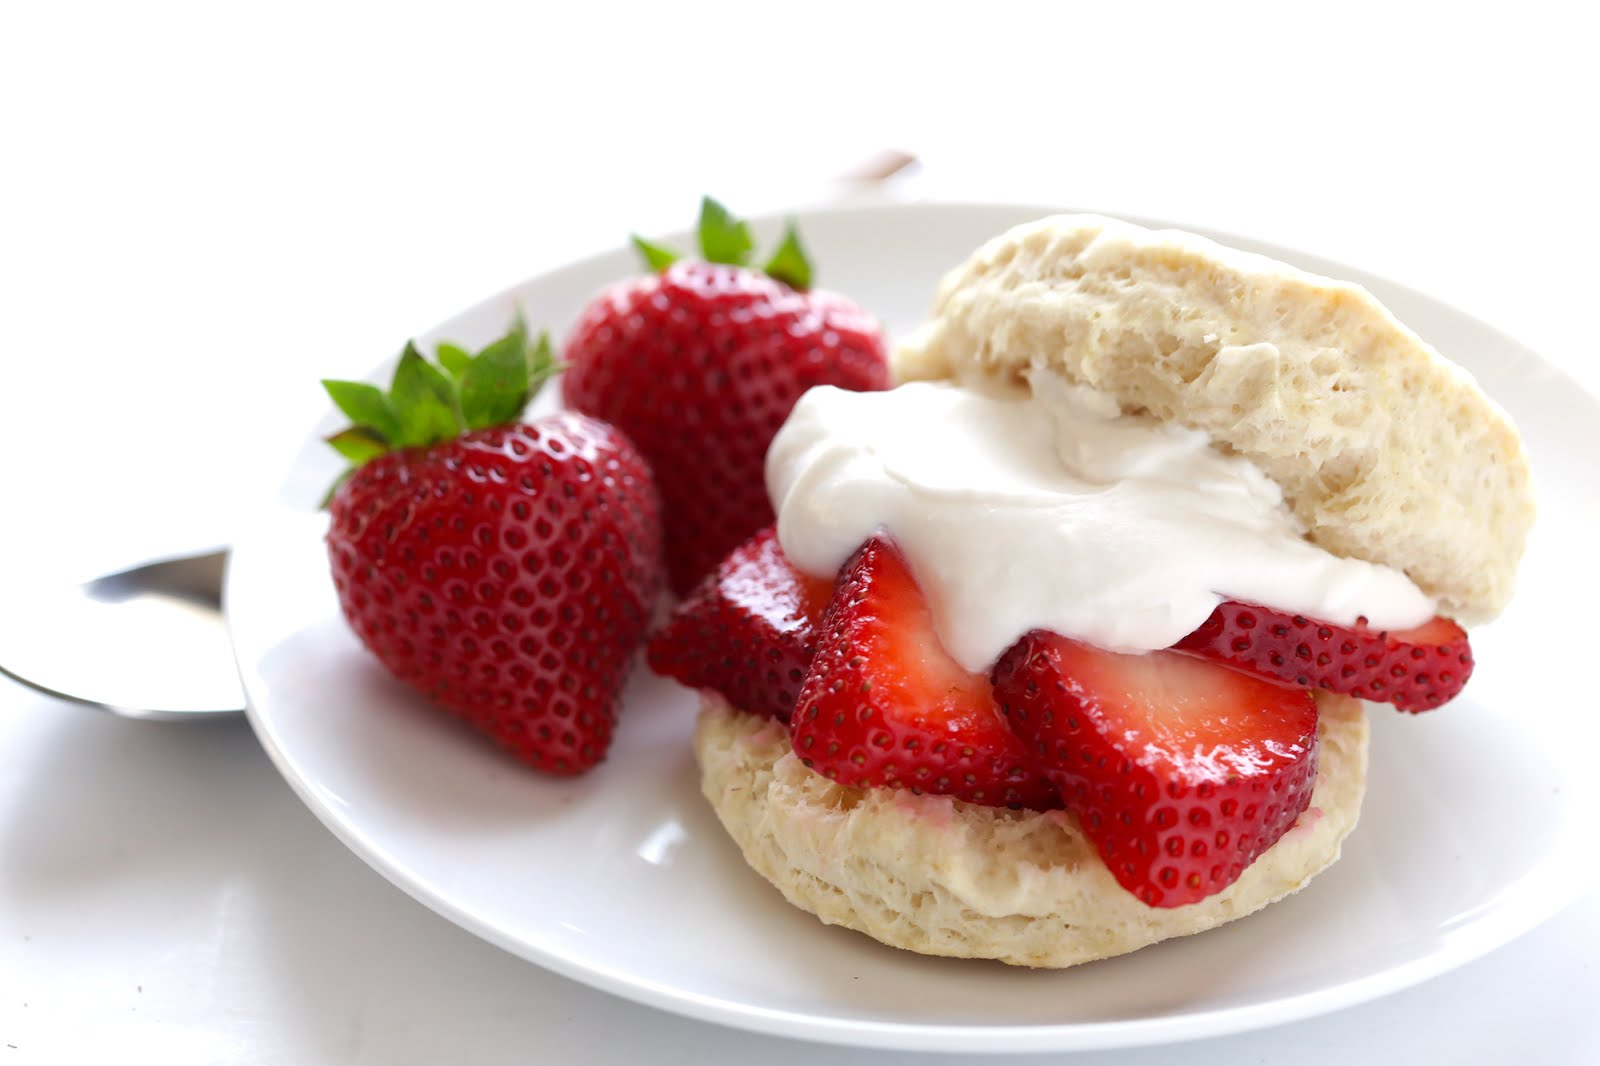 We're obsessed with this dairy free whipped cream made with coconut cream -- and we're not even dairy-free or vegan eaters. So good! Especially topped on this Vegan Strawberry Shortcakes at Gimme Some Oven.